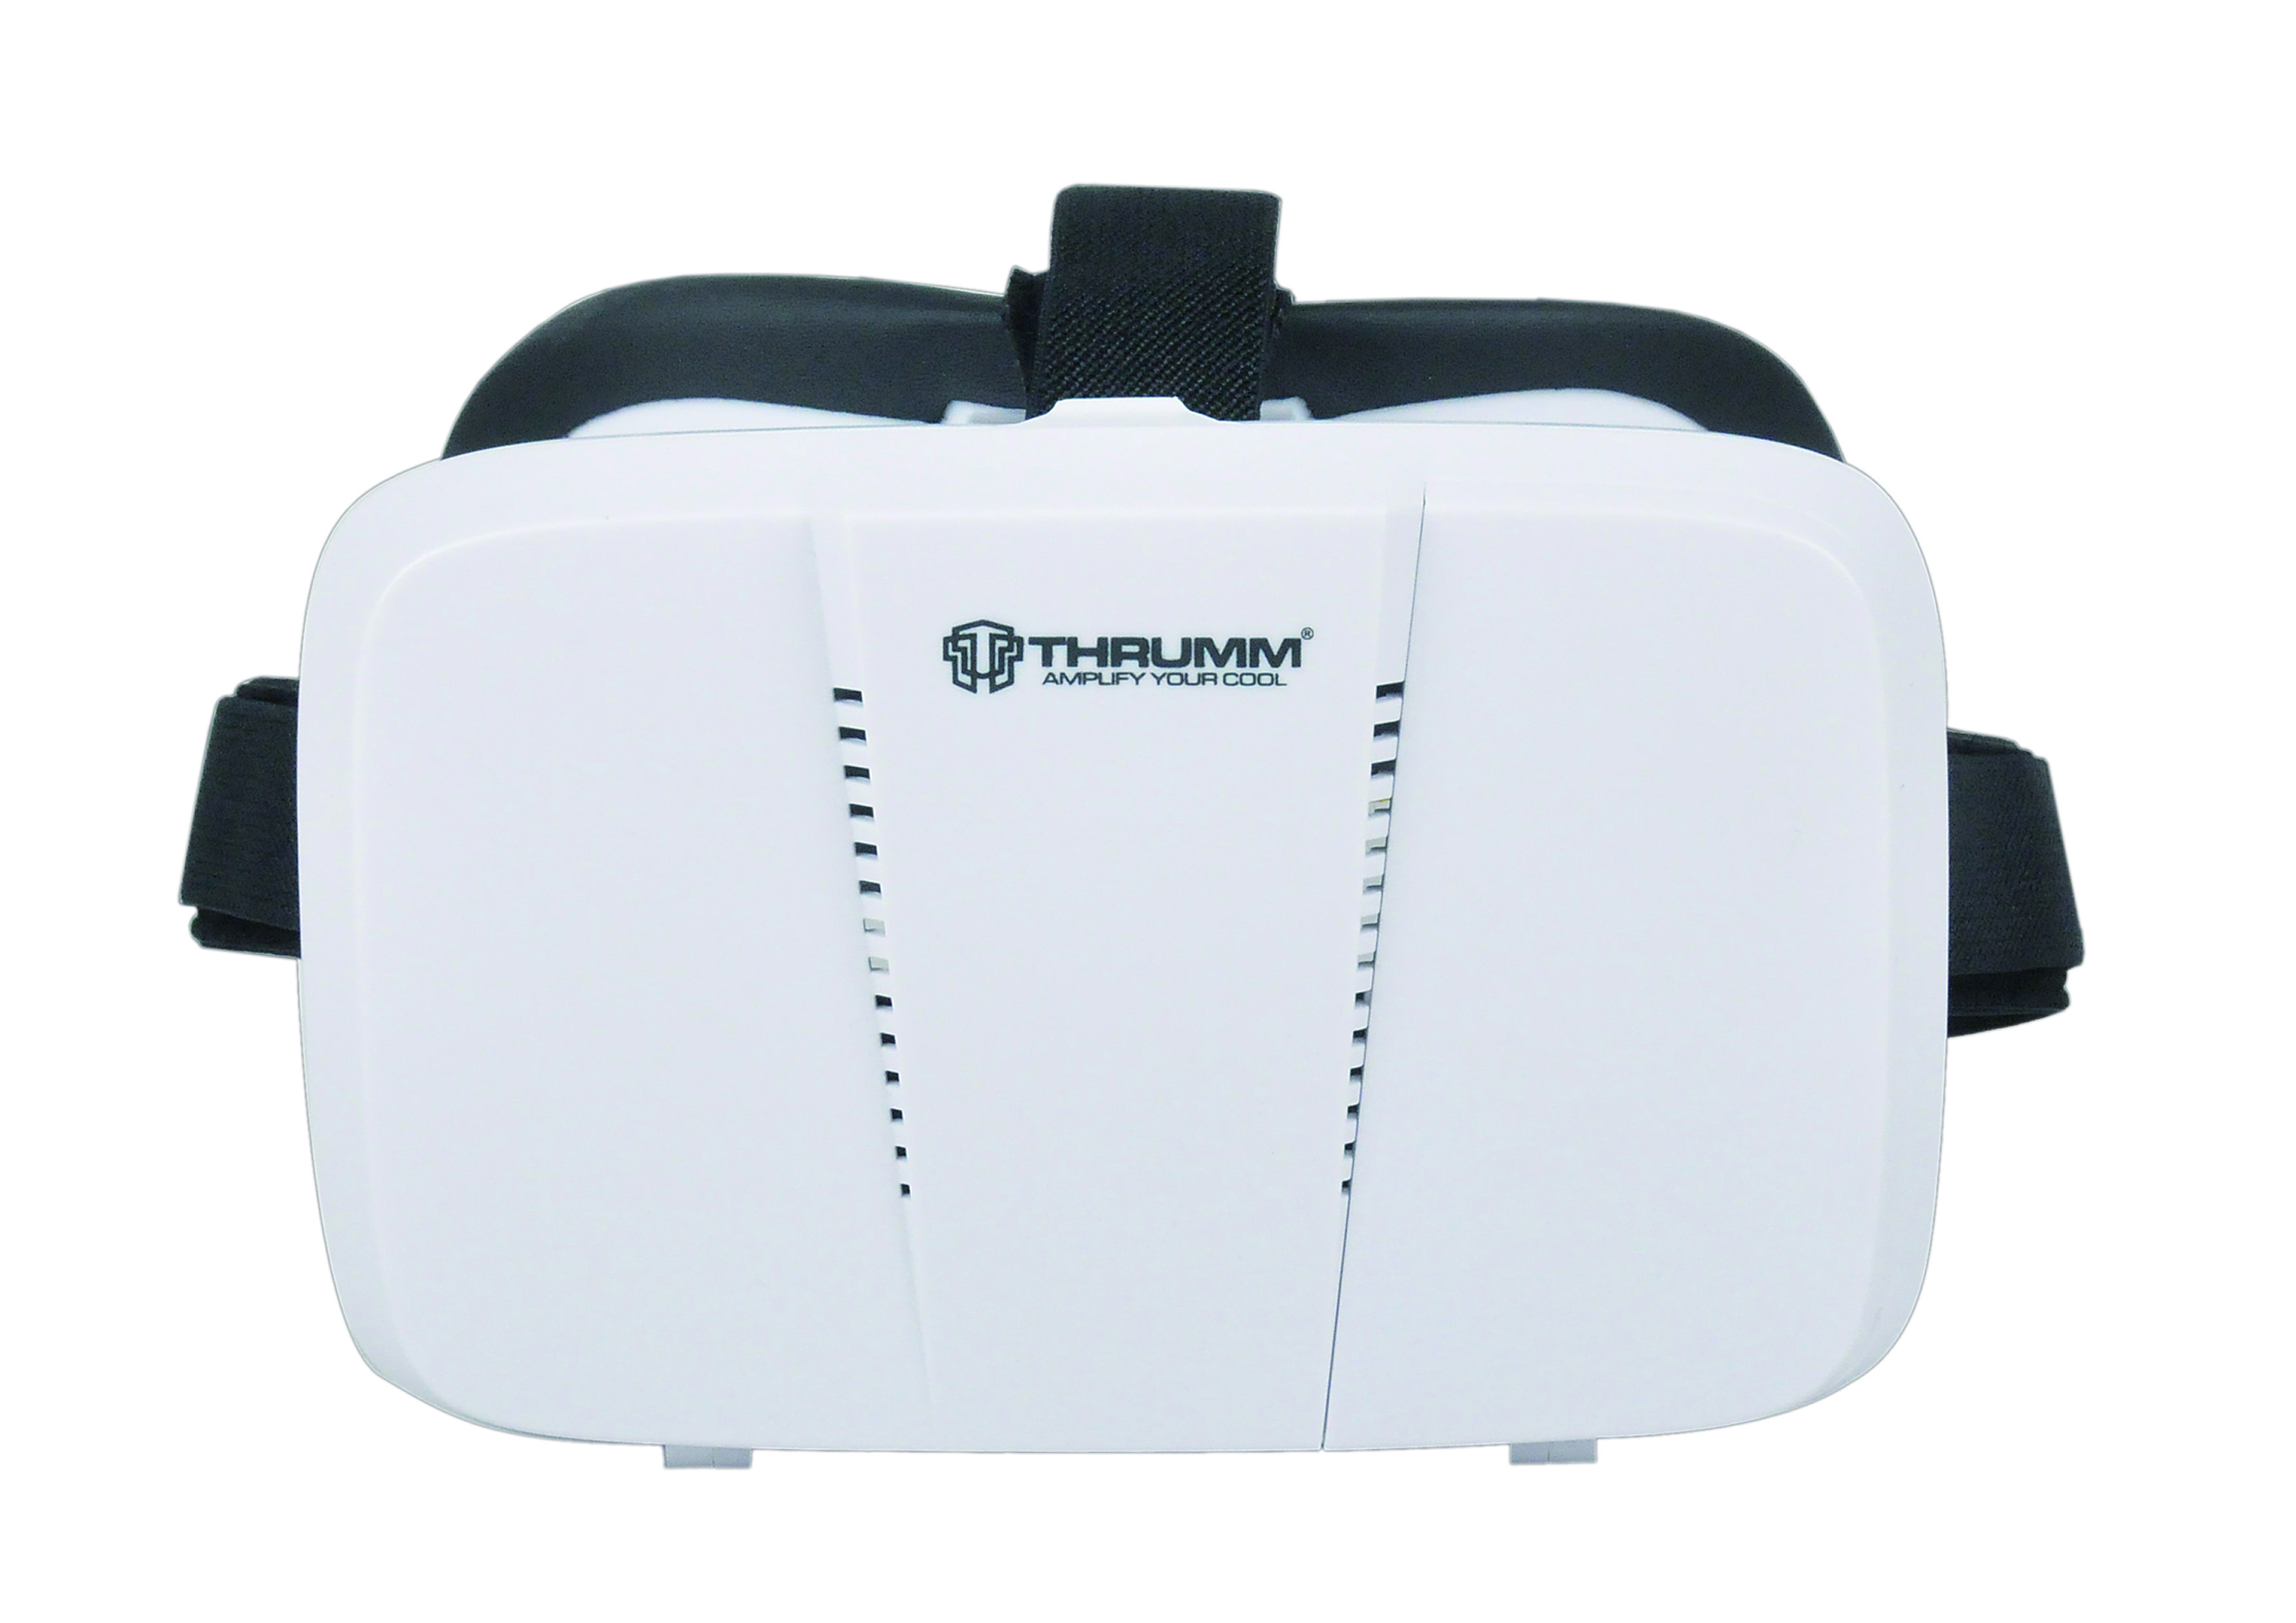 Thrumm 3D Vr glasses Turn your smartphone into a virtual